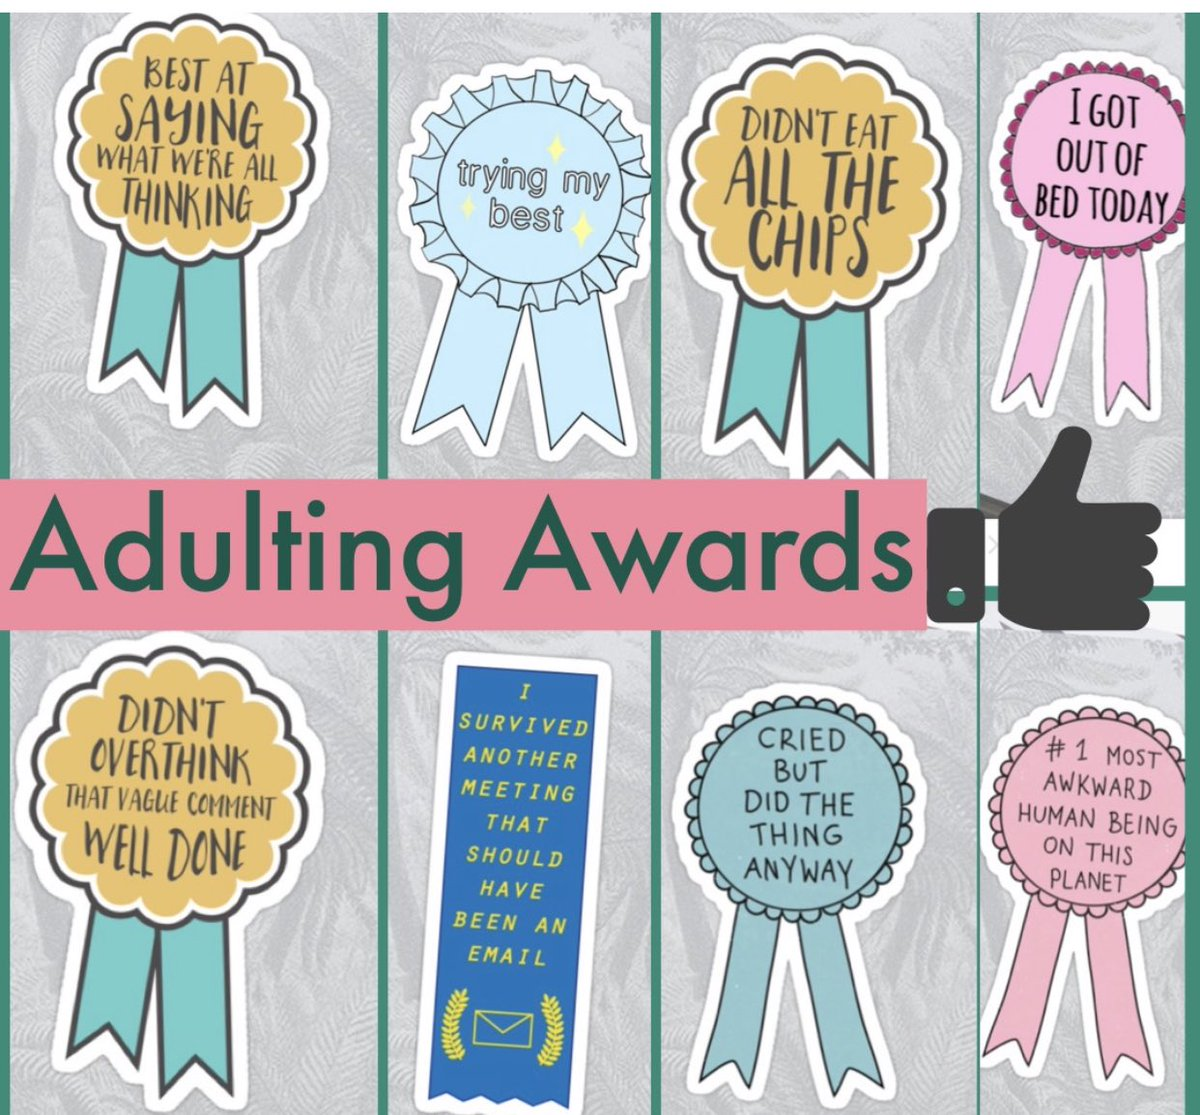 I am aiming for at least 2 Adulting Awards next week! How about you?